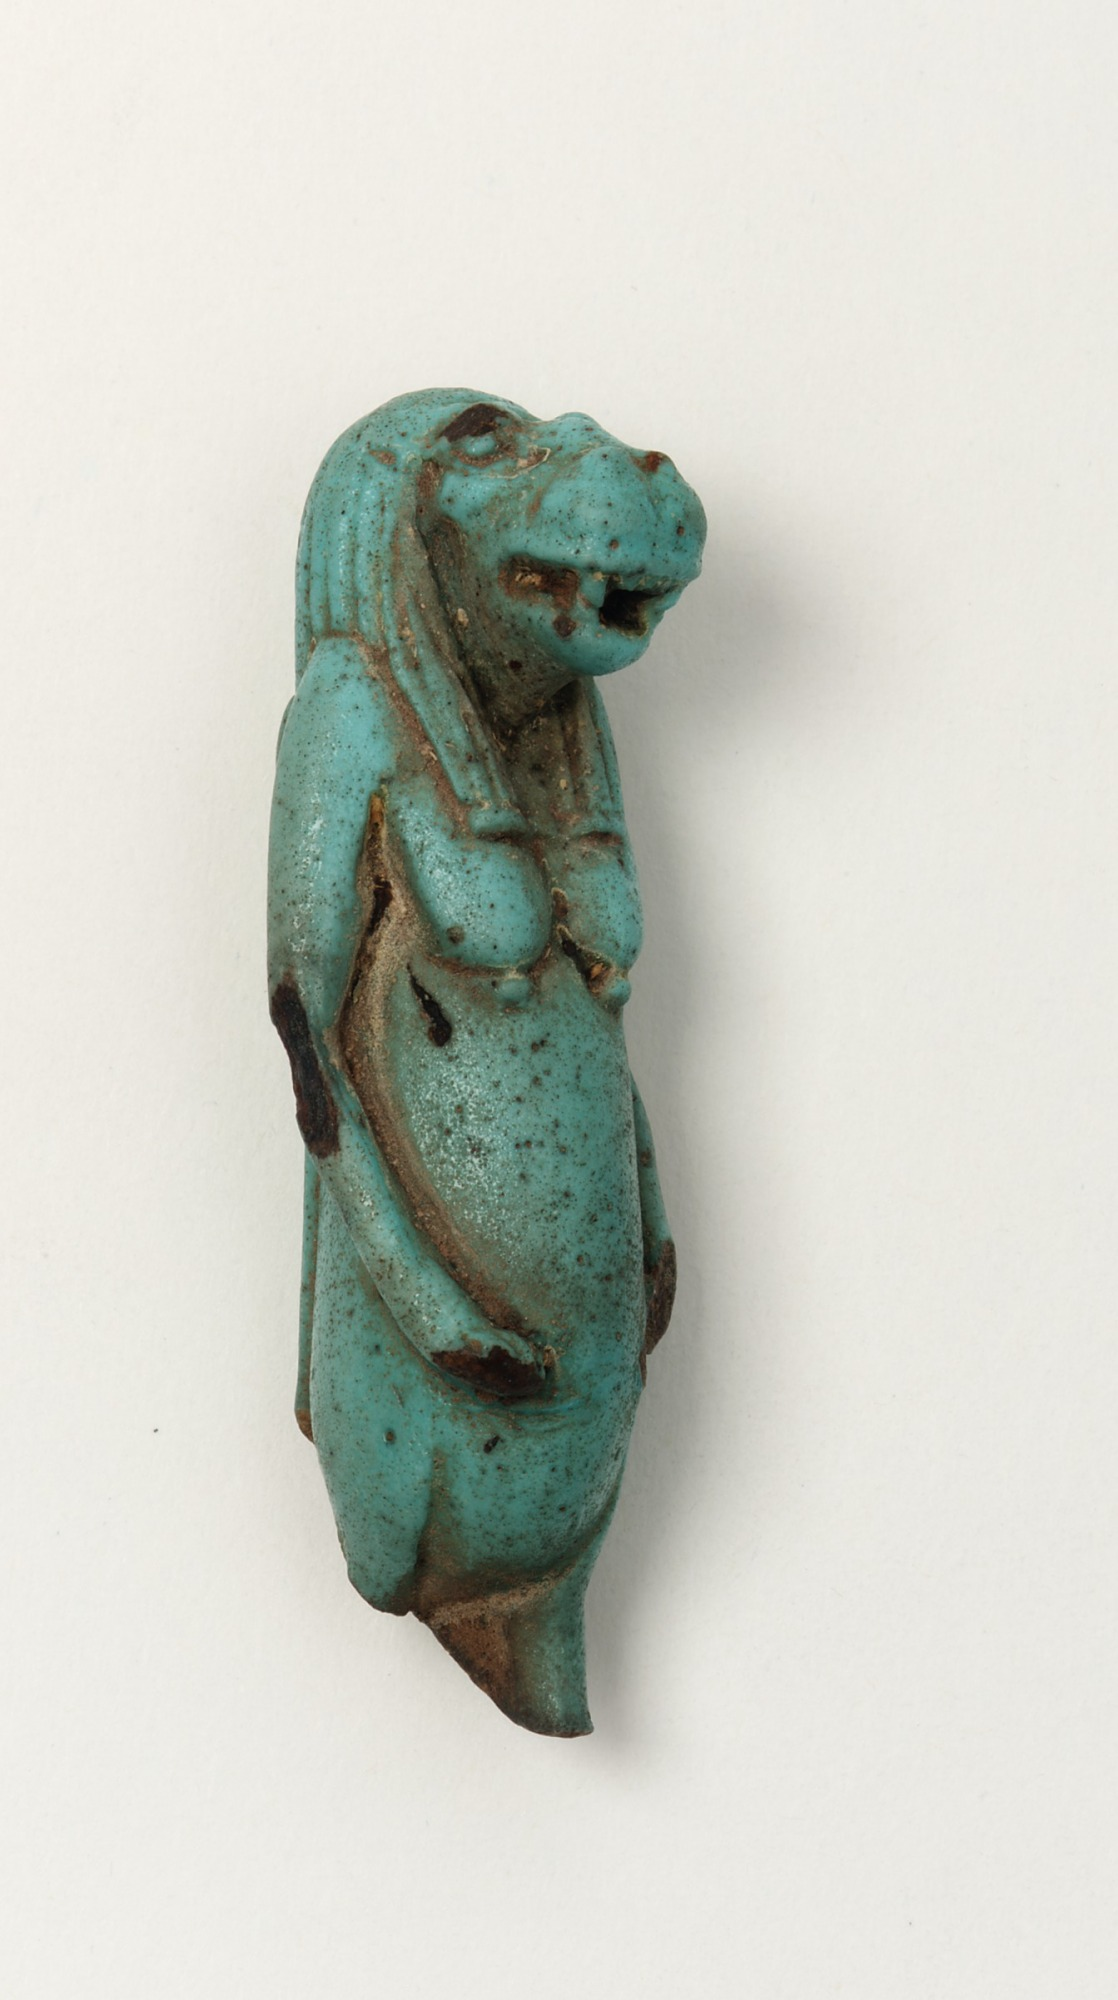 Amulet of the goddess Taweret